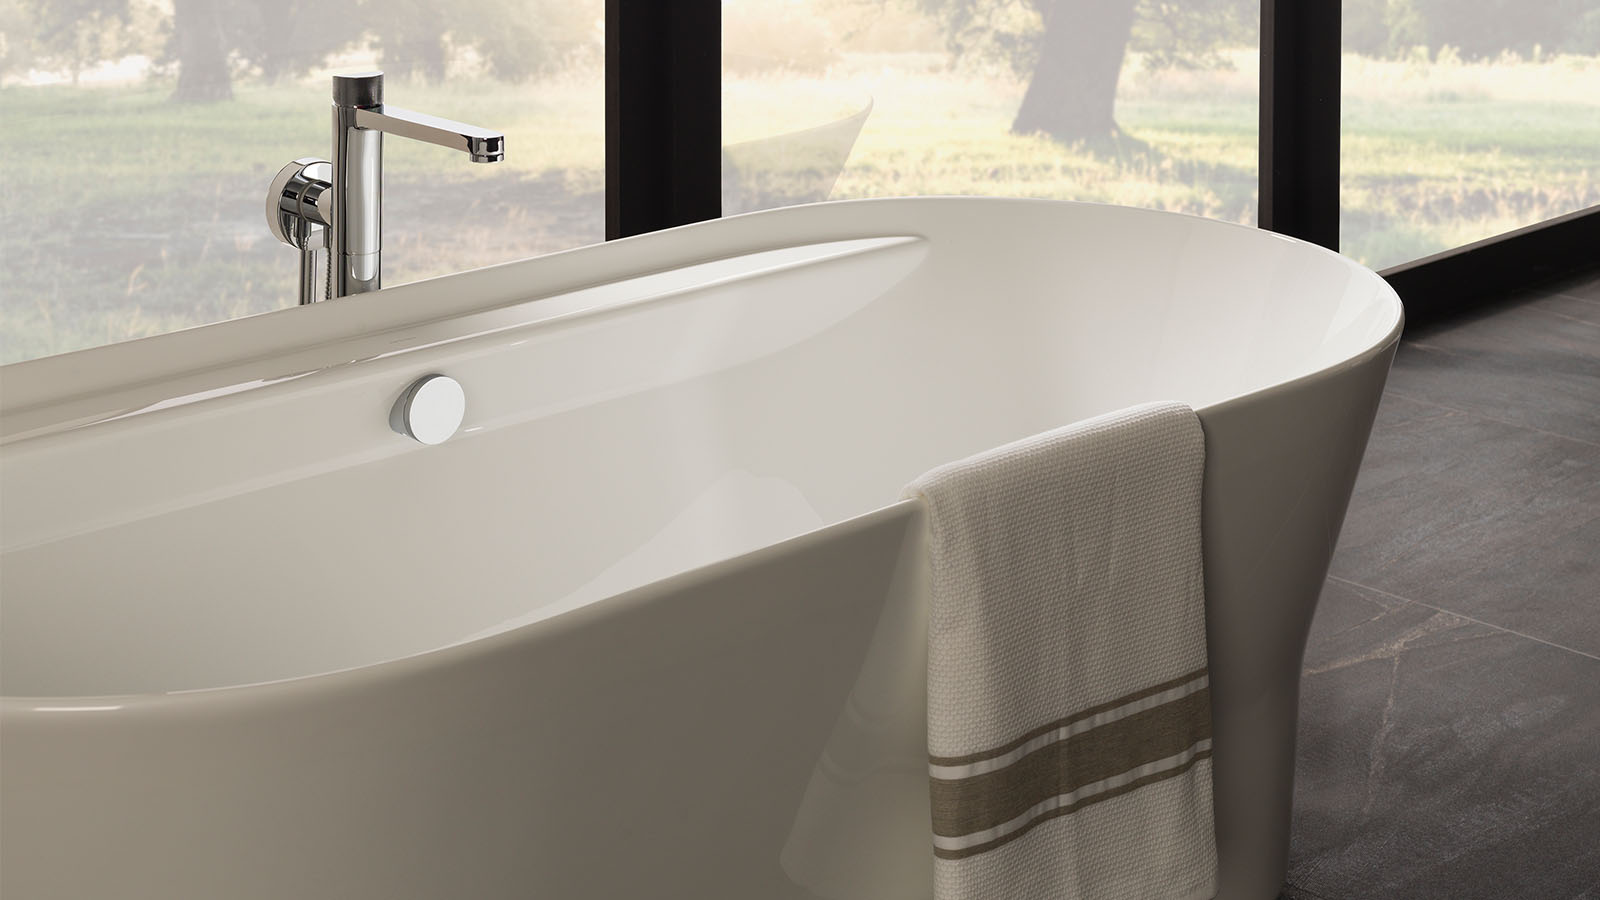 Choosing the right bath mixer taps for your bathroom